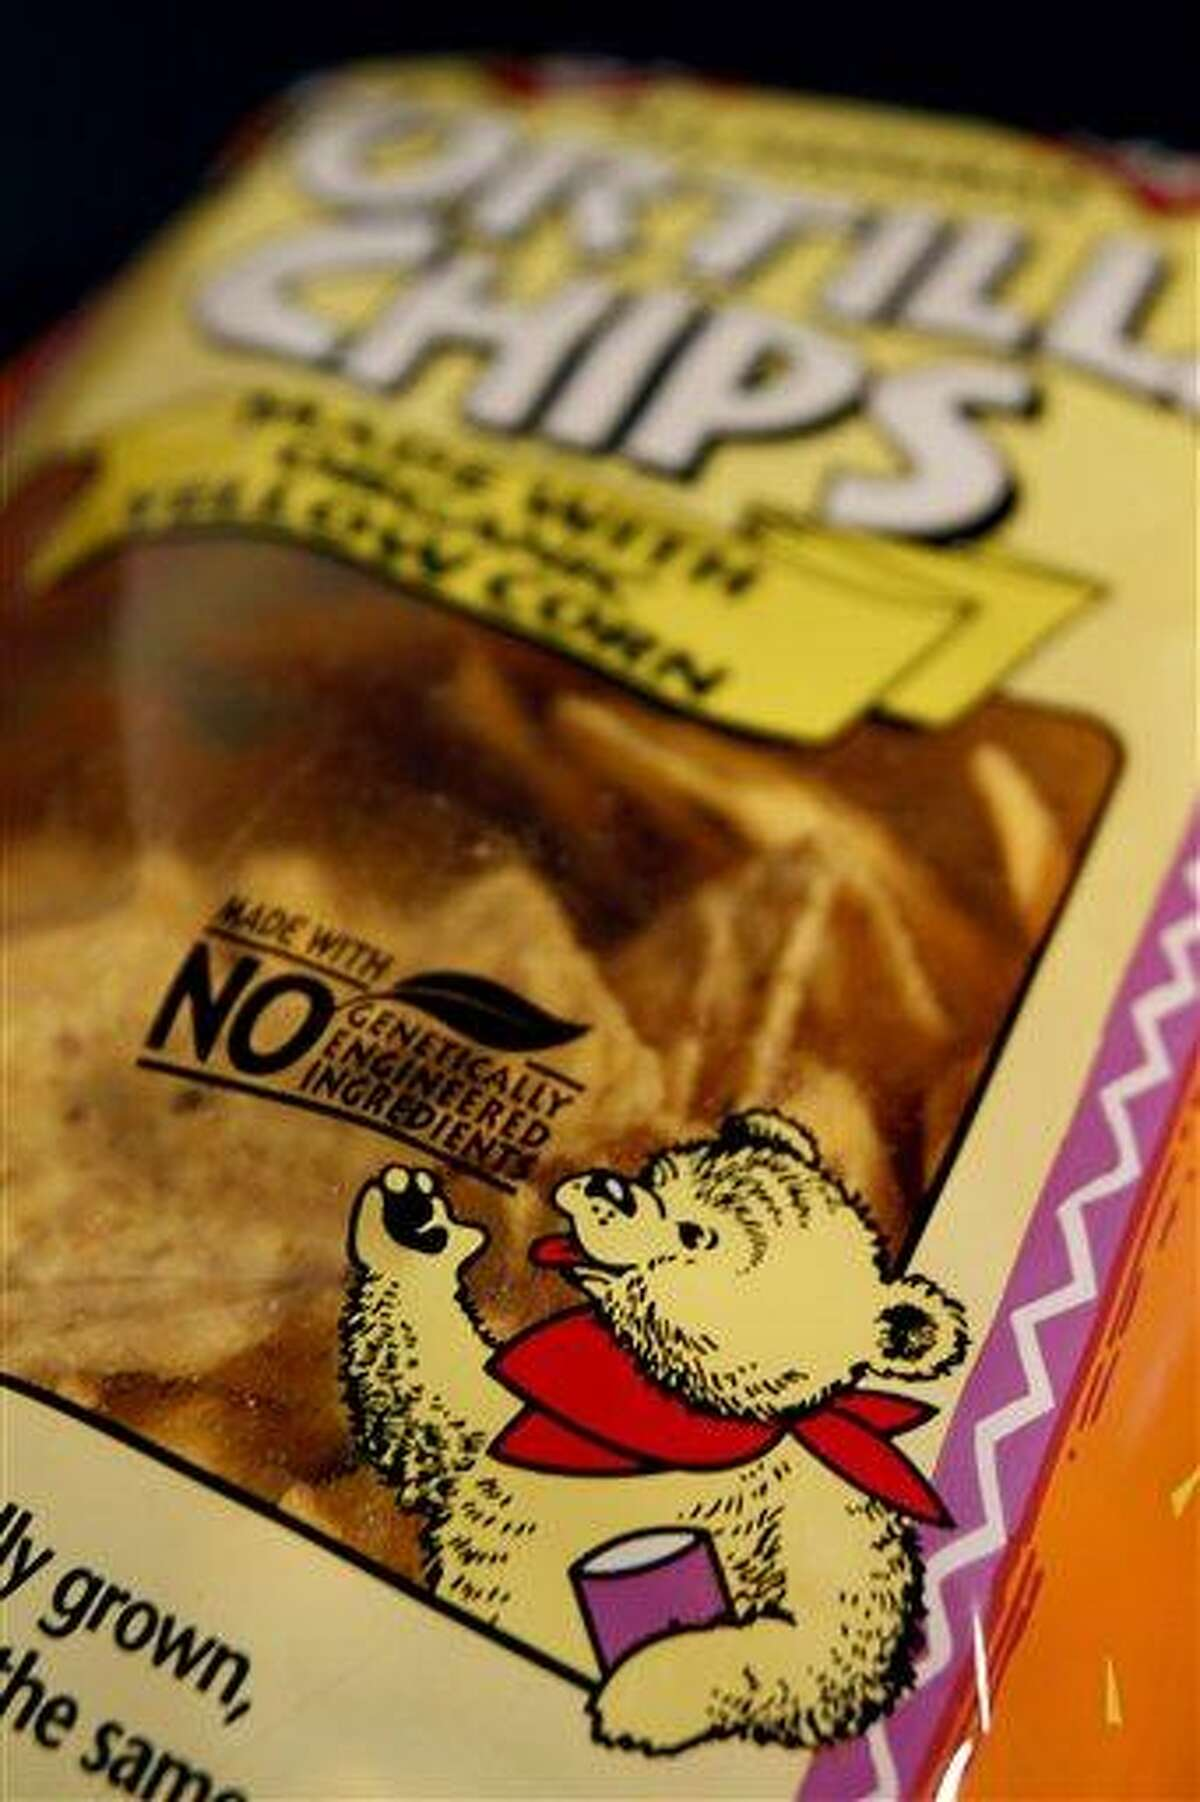 A genetically engineered label is seen on a package of tortilla chips in Montpelier, Vt. Eighteen states are considering legislation that would require labeling of genetically modified foods, even though no study says genetically modified food is unhealthy or unsafe. Associated Press file photo